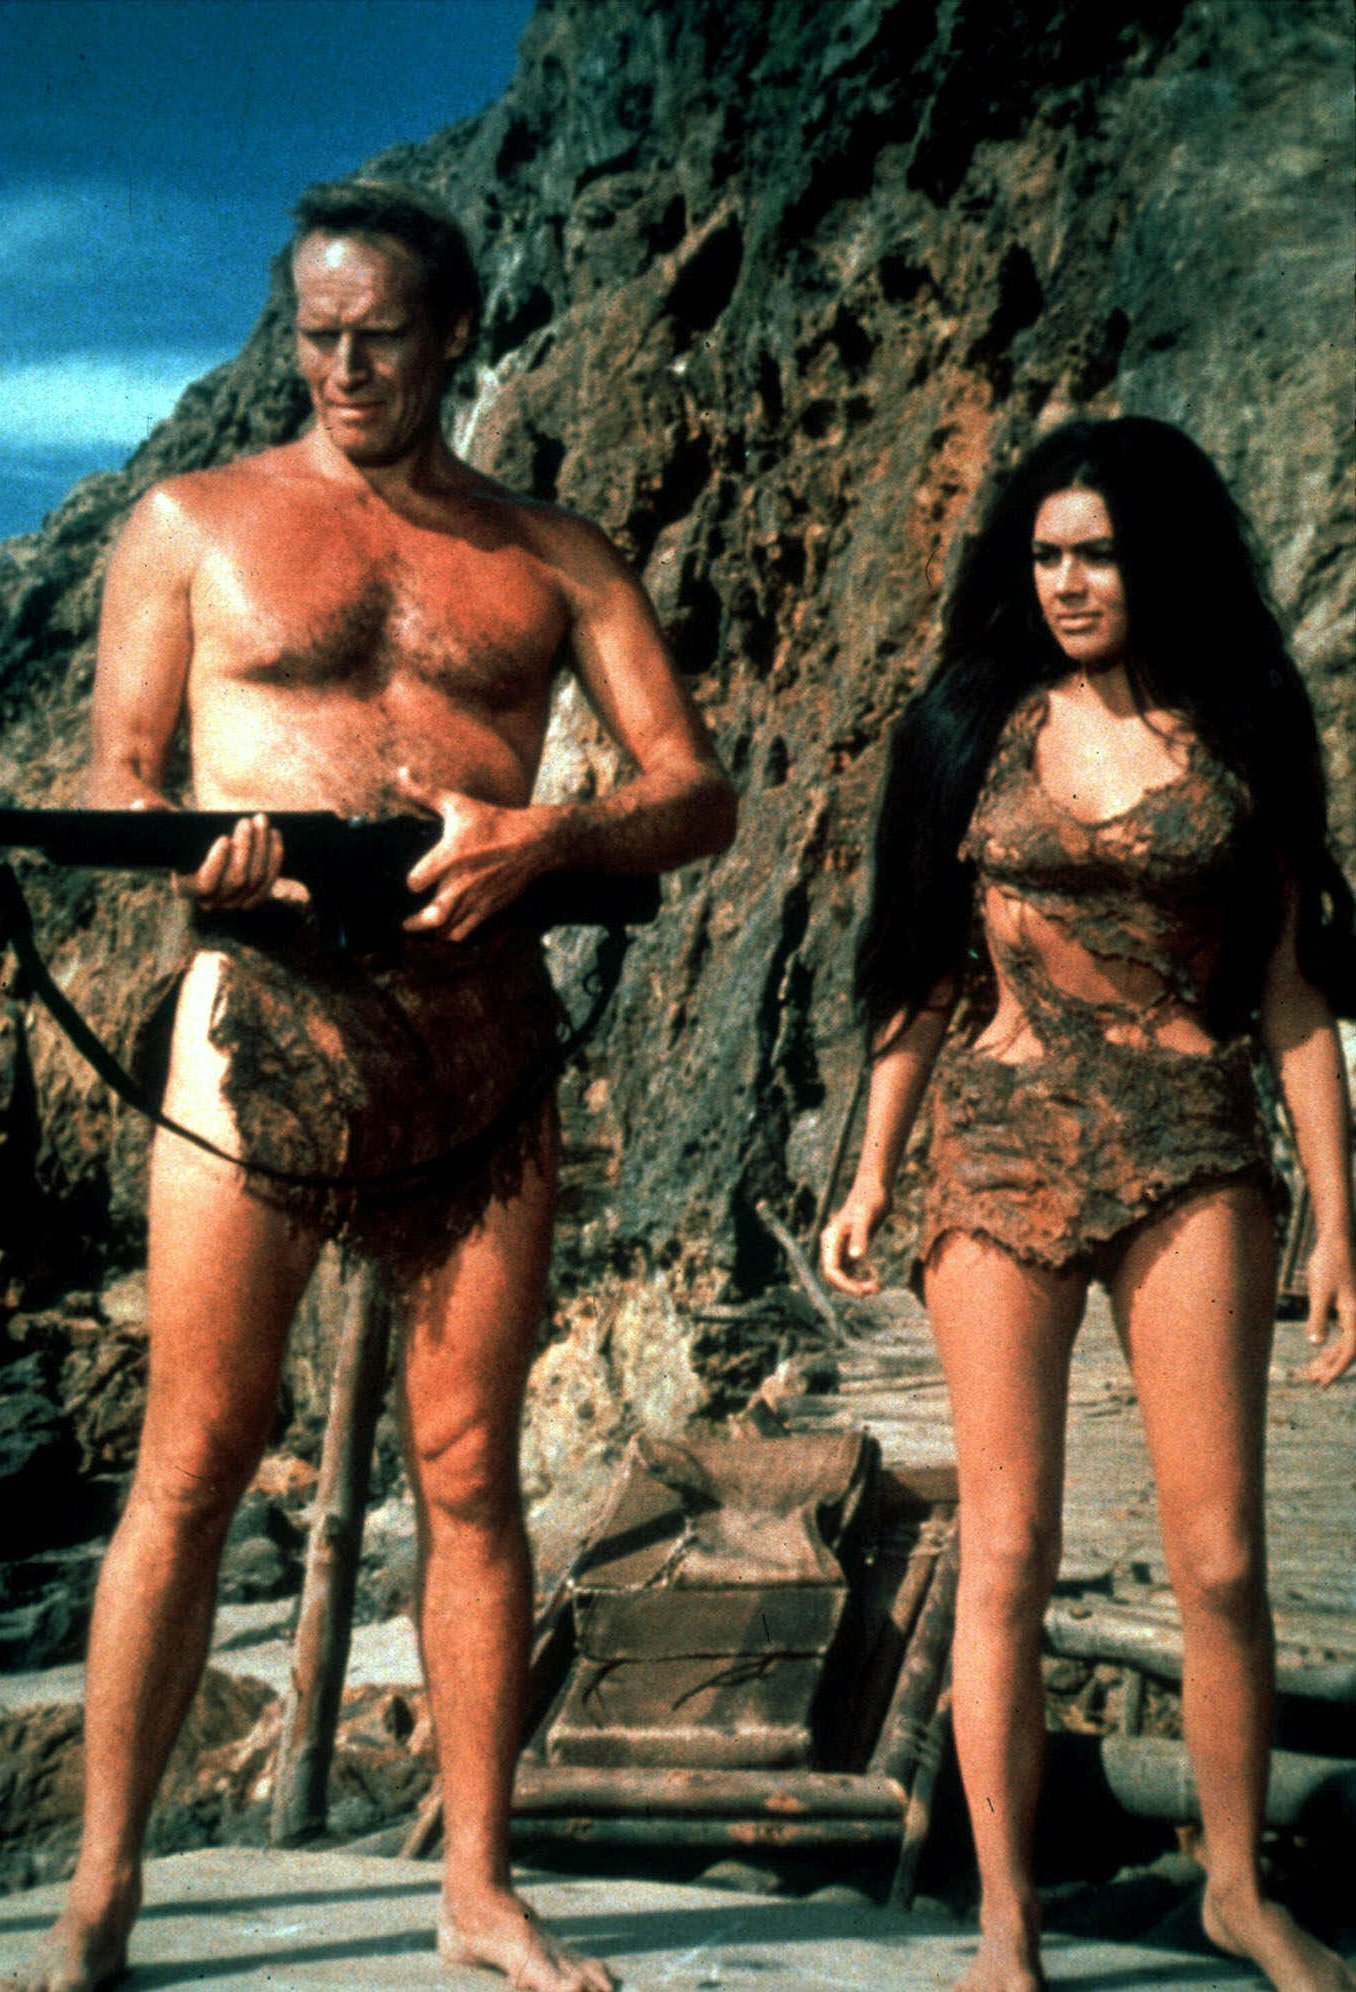 https://thecinemamonster.files.wordpress.com/2013/05/planet-of-the-apes-charlton-heston.jpg